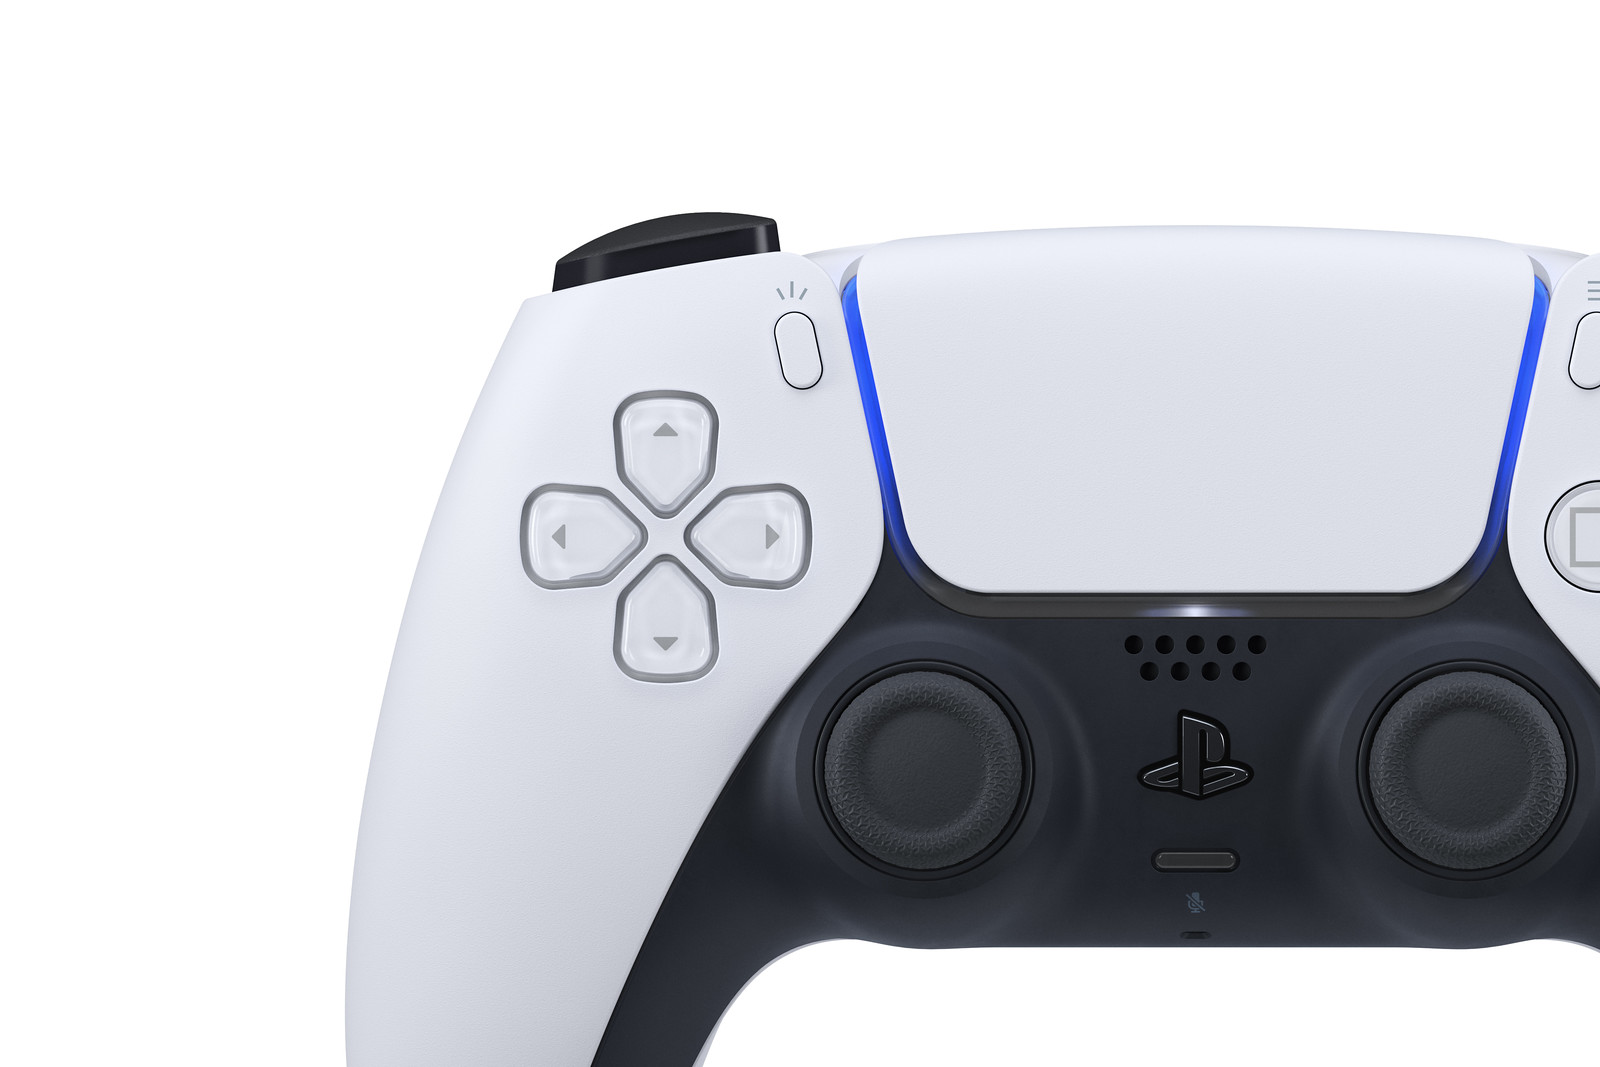 Introducing Dualsense The New Wireless Game Controller For